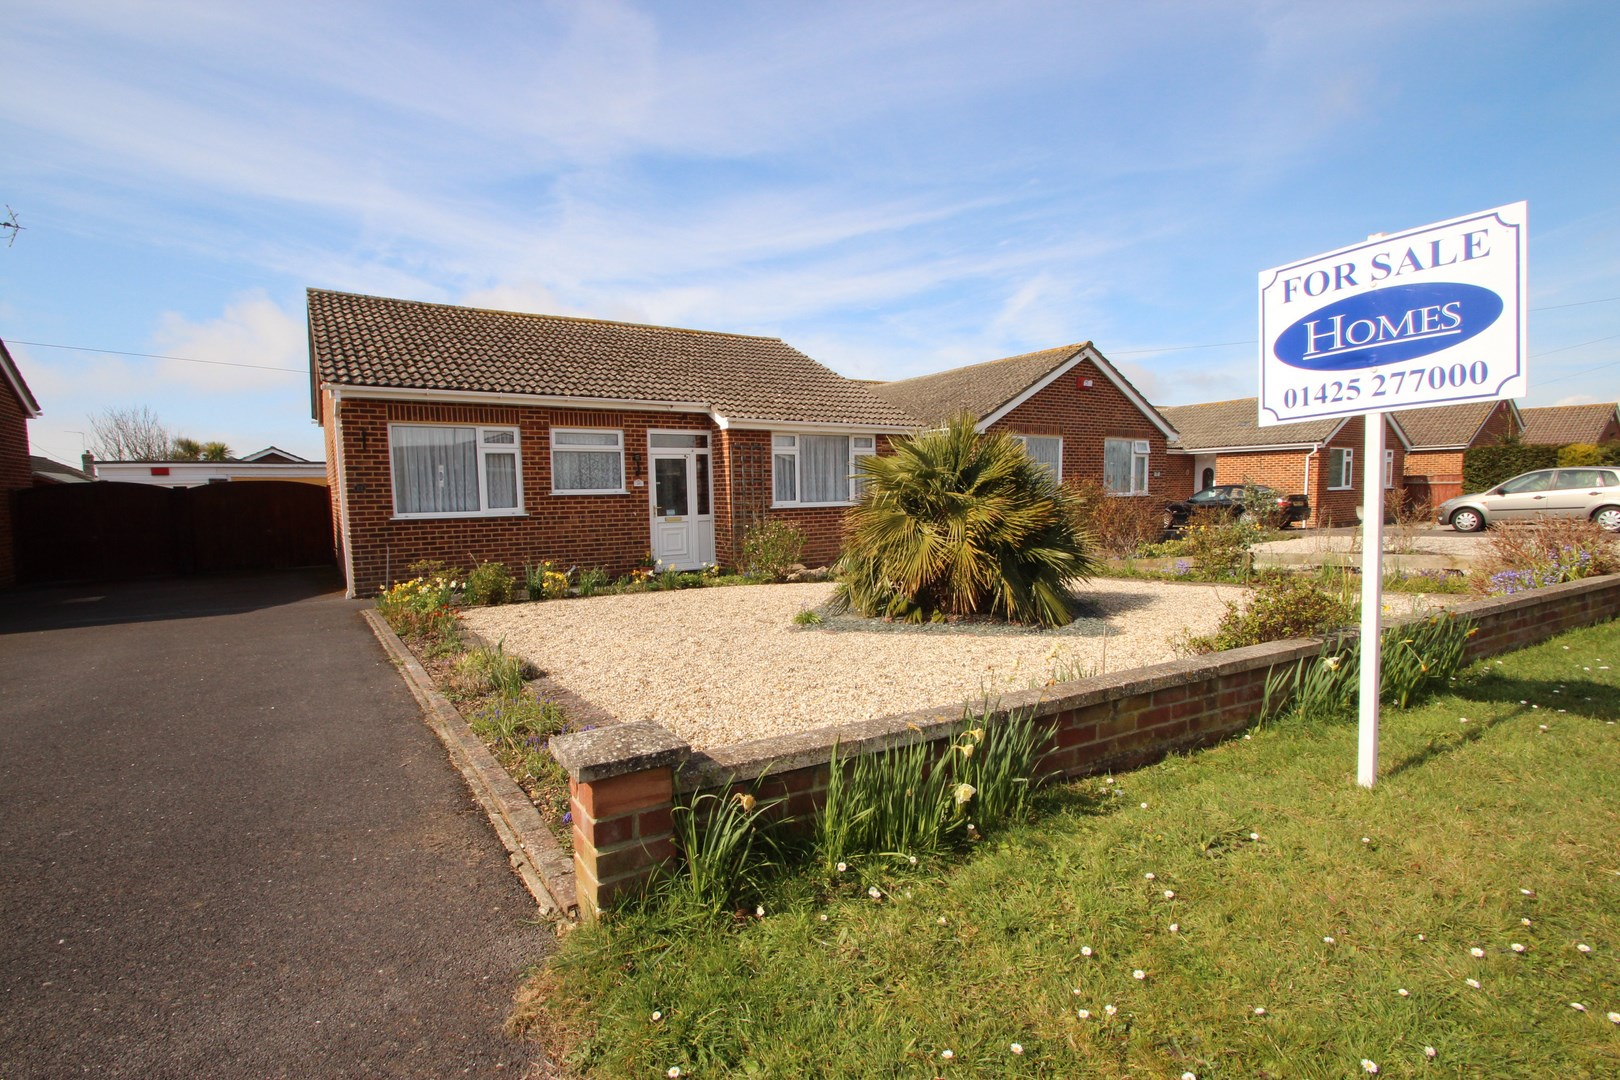 3 Bedroom in Mudeford